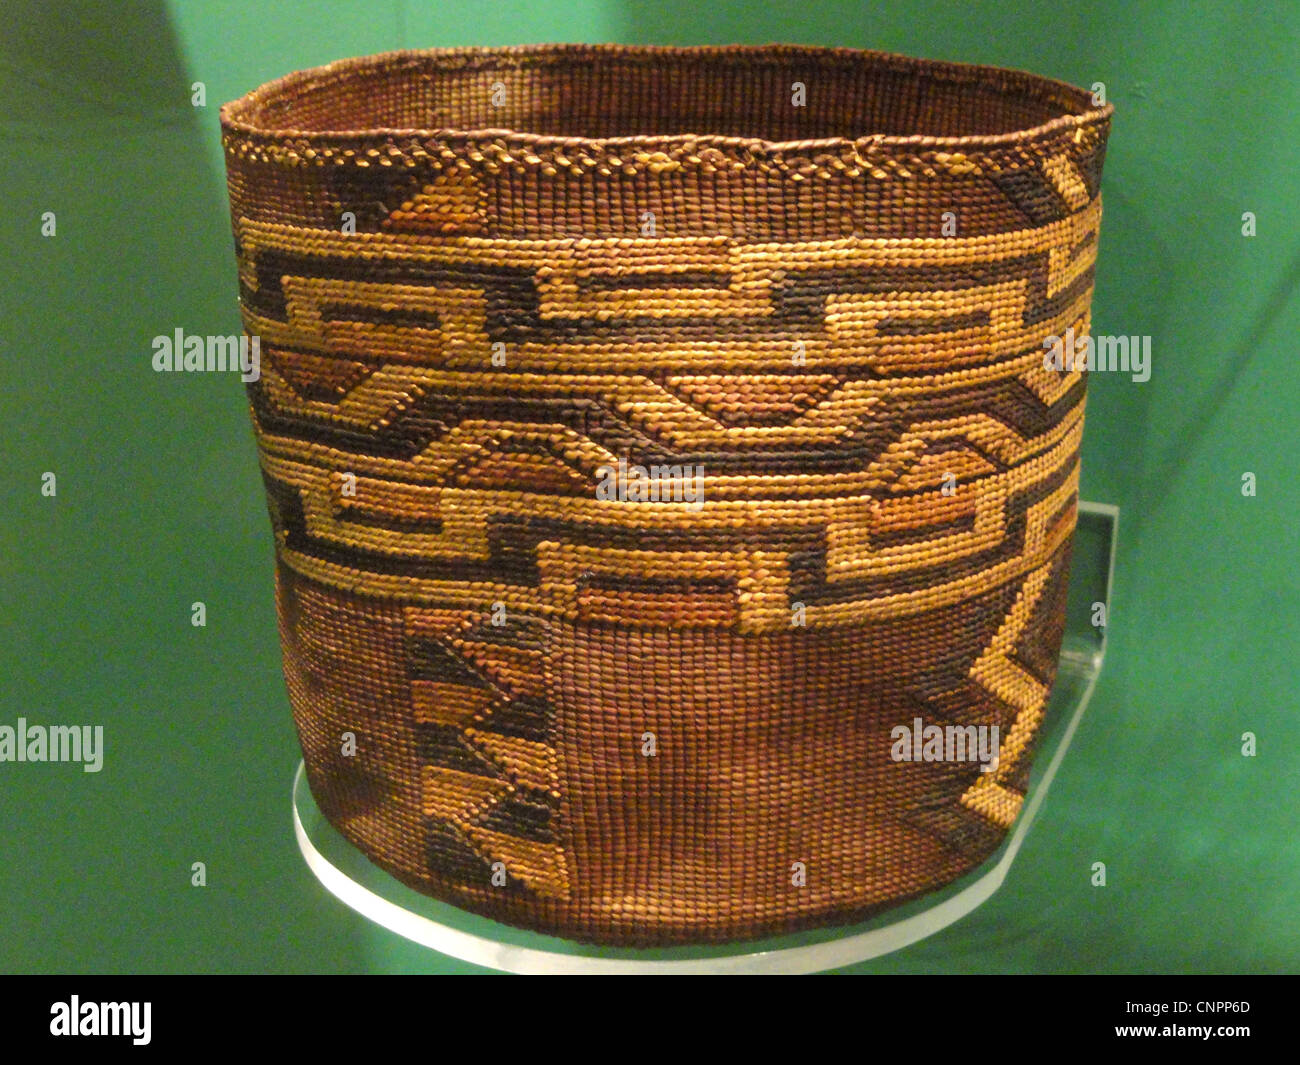 Basket, Tlingit, probably mid 1800s - Native American collection - Peabody Museum, Harvard University - Stock Image